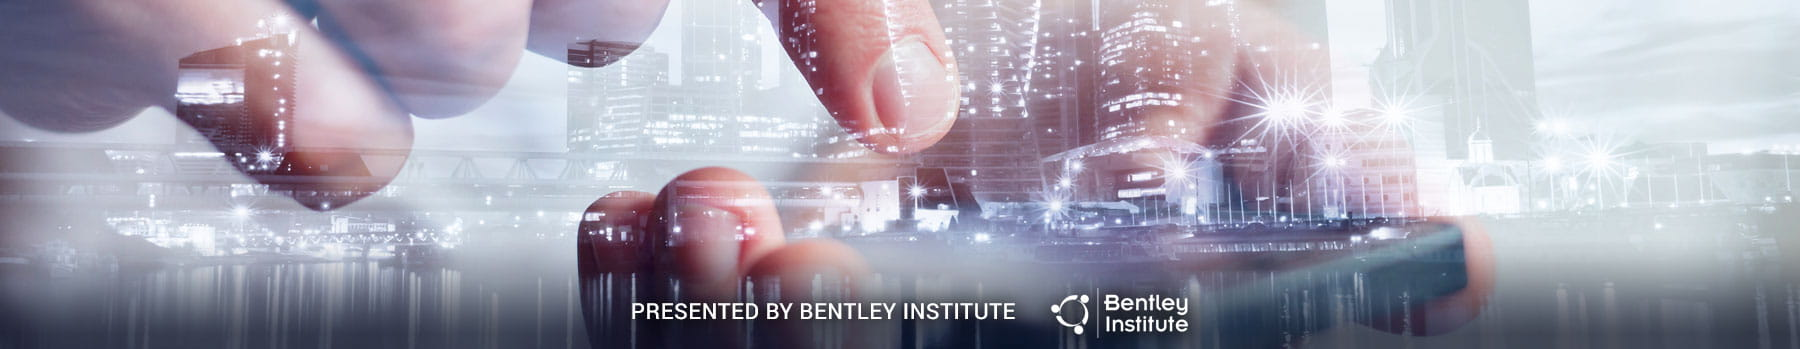 Bentley Institute Going Digital Event